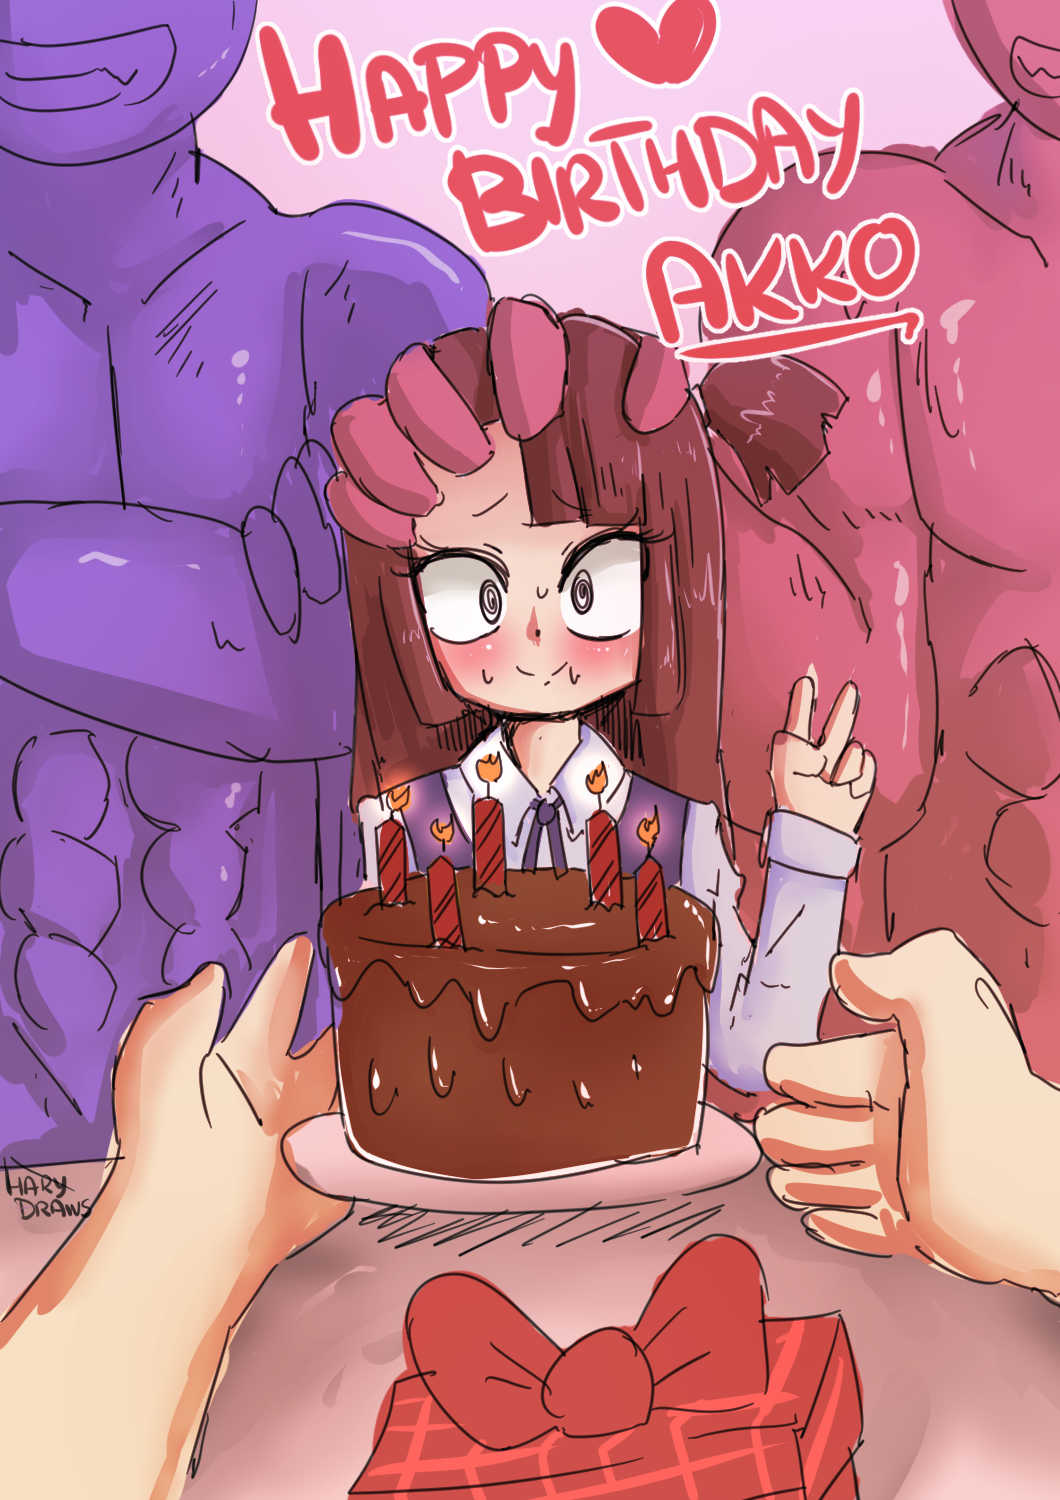 Happy Birthday Akko (Little Witch Academia) by Hary96 | Porn Comics